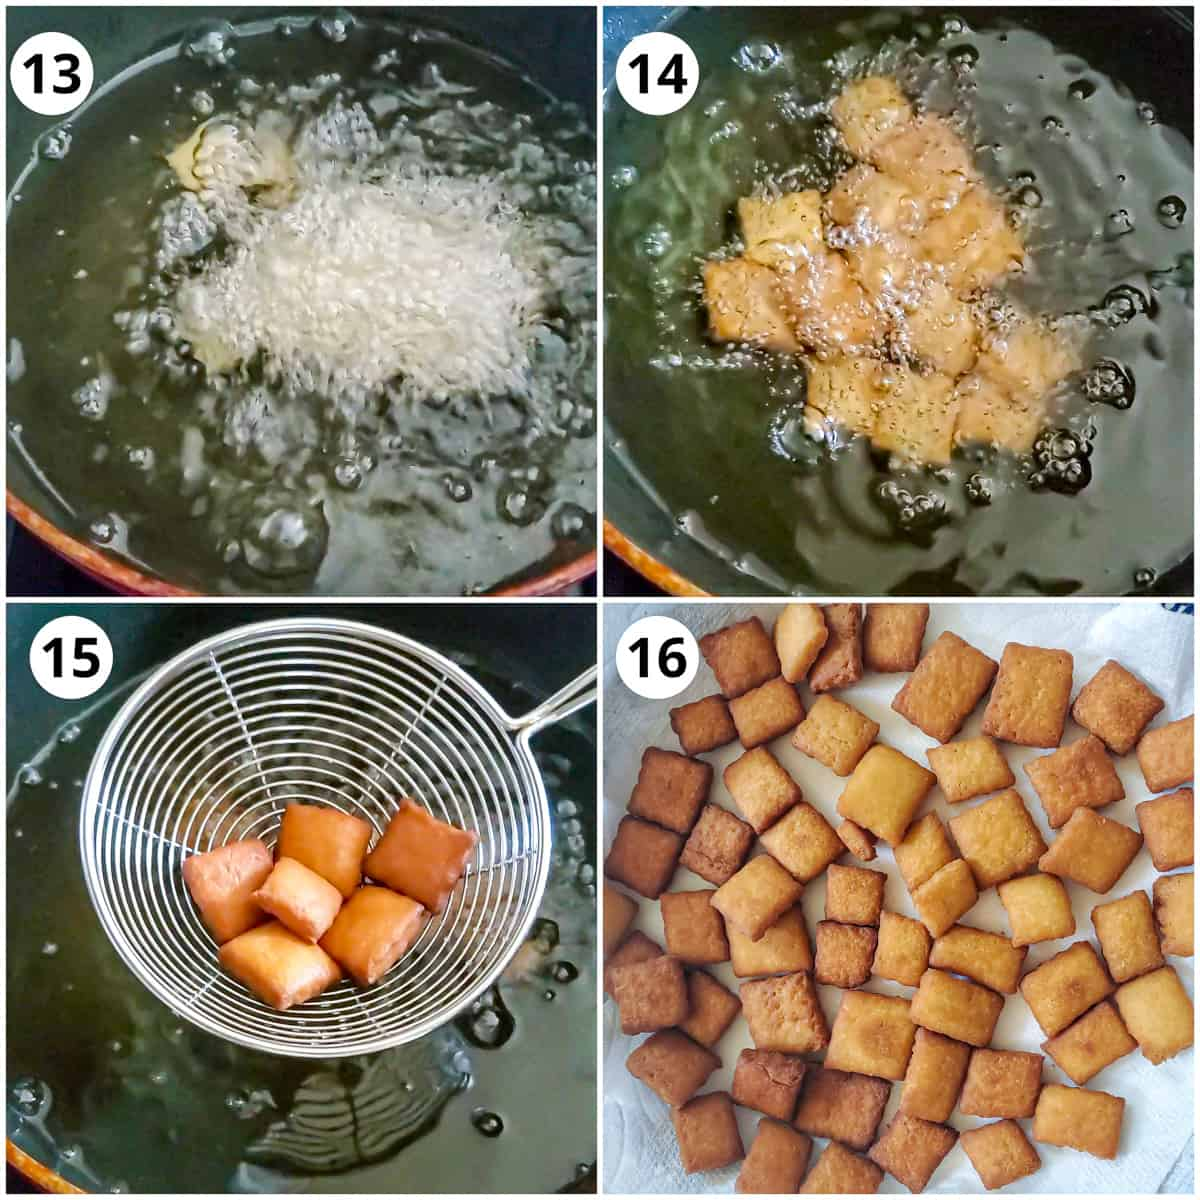 Steps for frying shankarpali in oil and draining on tissue paper lined plate